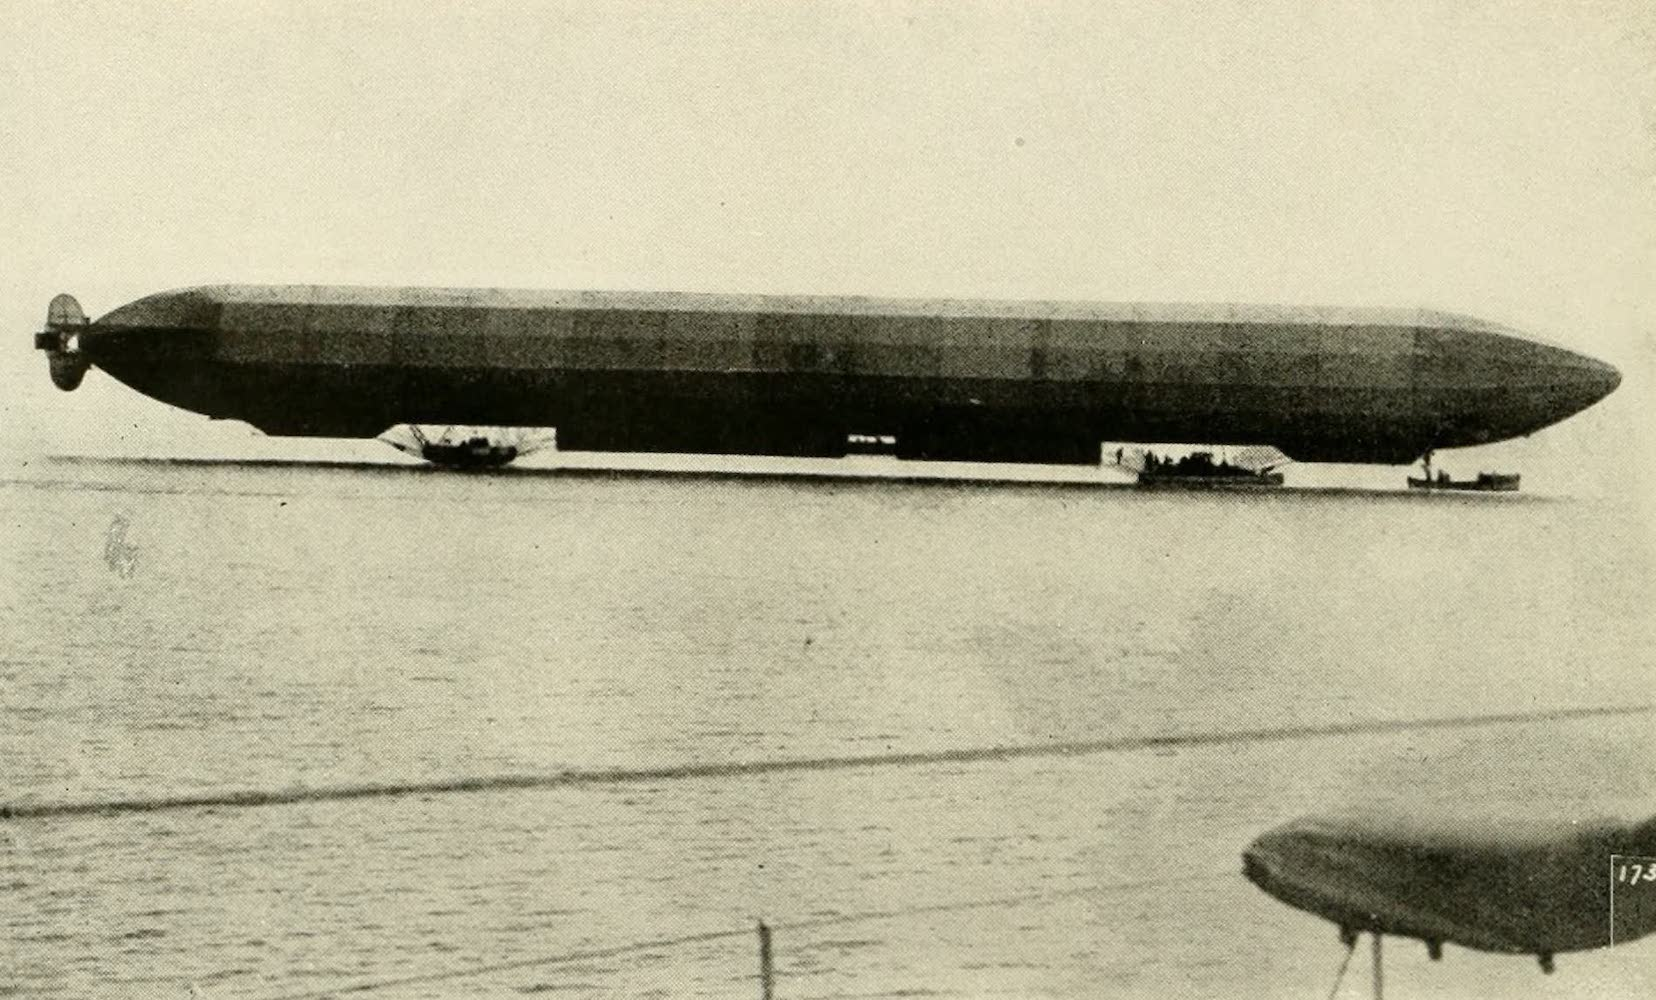 Laird & Lee's World's War Glimpses - Death Dealing German Zeppelin Riding on the Water (1914)